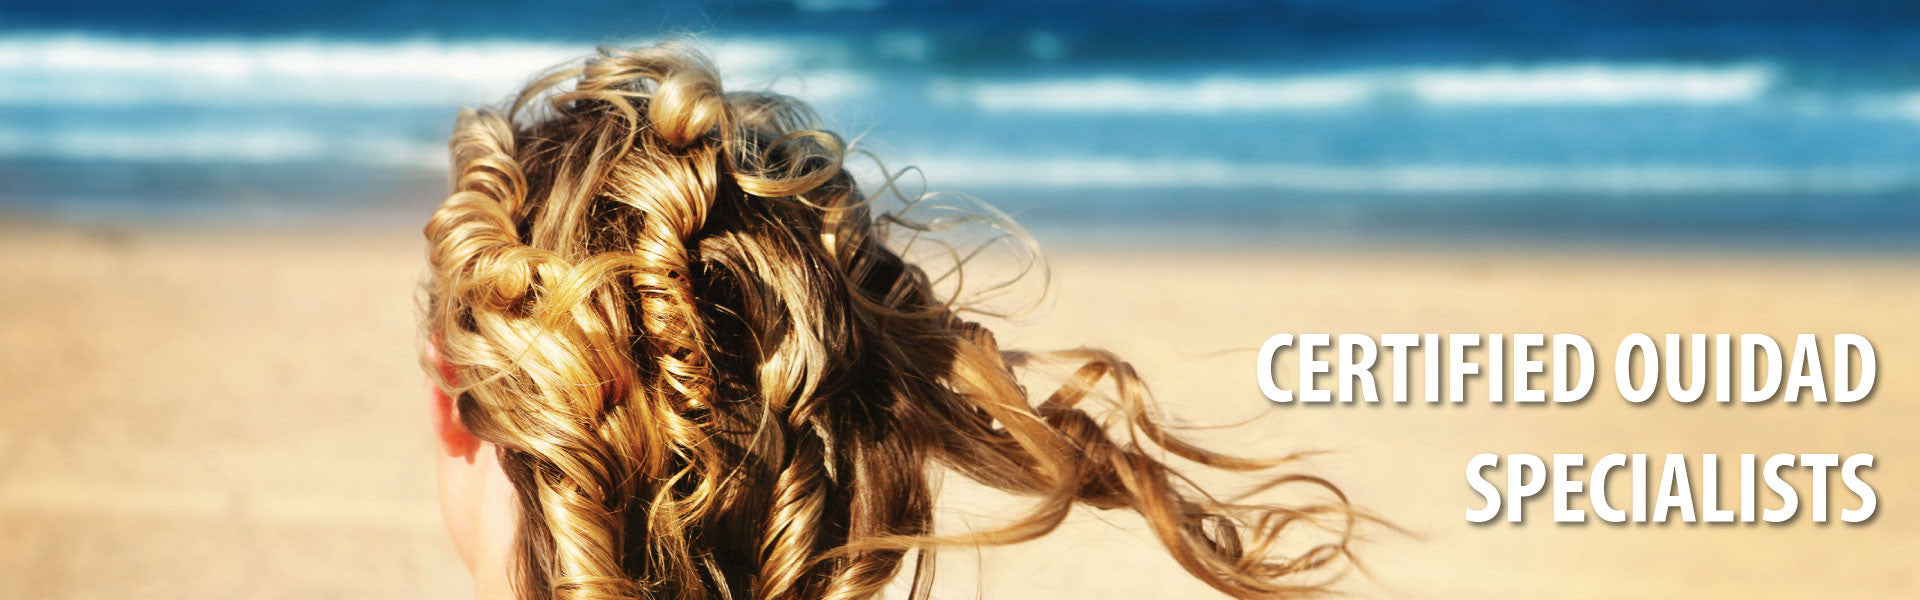 Certified Ouidad Curly Hair Stylists West Palm Beach Hair Salon